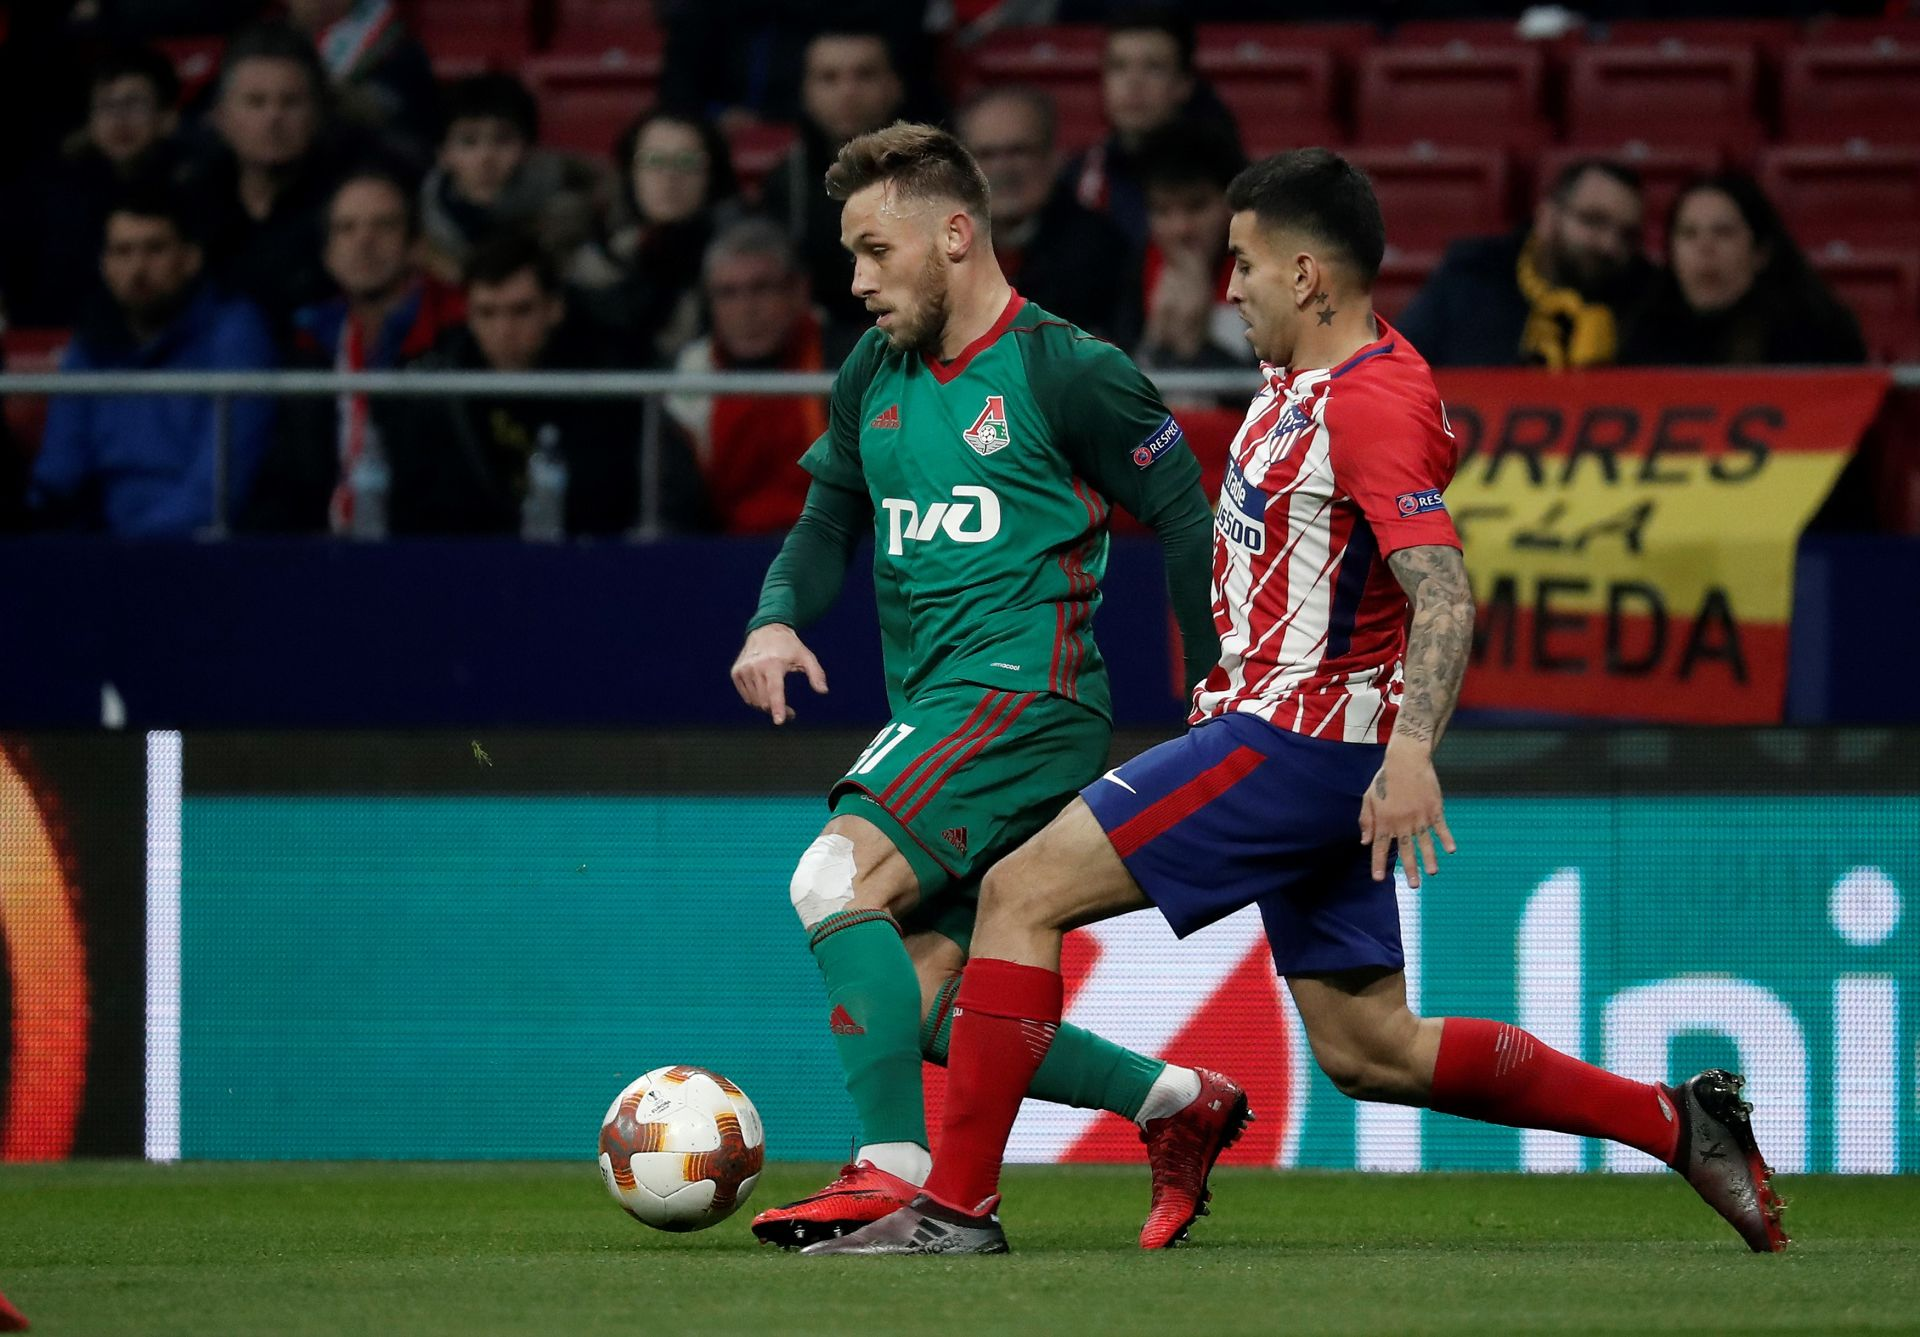 MADRID, SPAIN - MARCH 8: Angel Correa (R) of Atletico Madrid in action against Maciej Rybus (L) of Lokomotiv Moscow during the UEFA Europa League Round of 16 soccer match between Atletico Madrid and Lokomotiv Moscow at Wanda Metropolitano Stadium in Madrid, Spain on March 8, 2018. Burak Akbulut / Anadolu Agency LIGA EUROPY PILKA NOZNA SEZON 2017/2018 FOT.ABACA/NEWSPIX.PL POLAND ONLY!!! --- Newspix.pl *** Local Caption *** www.newspix.pl mail us: info@newspix.pl call us: 0048 022 23 22 222 --- Polish Picture Agency by Ringier Axel Springer Poland